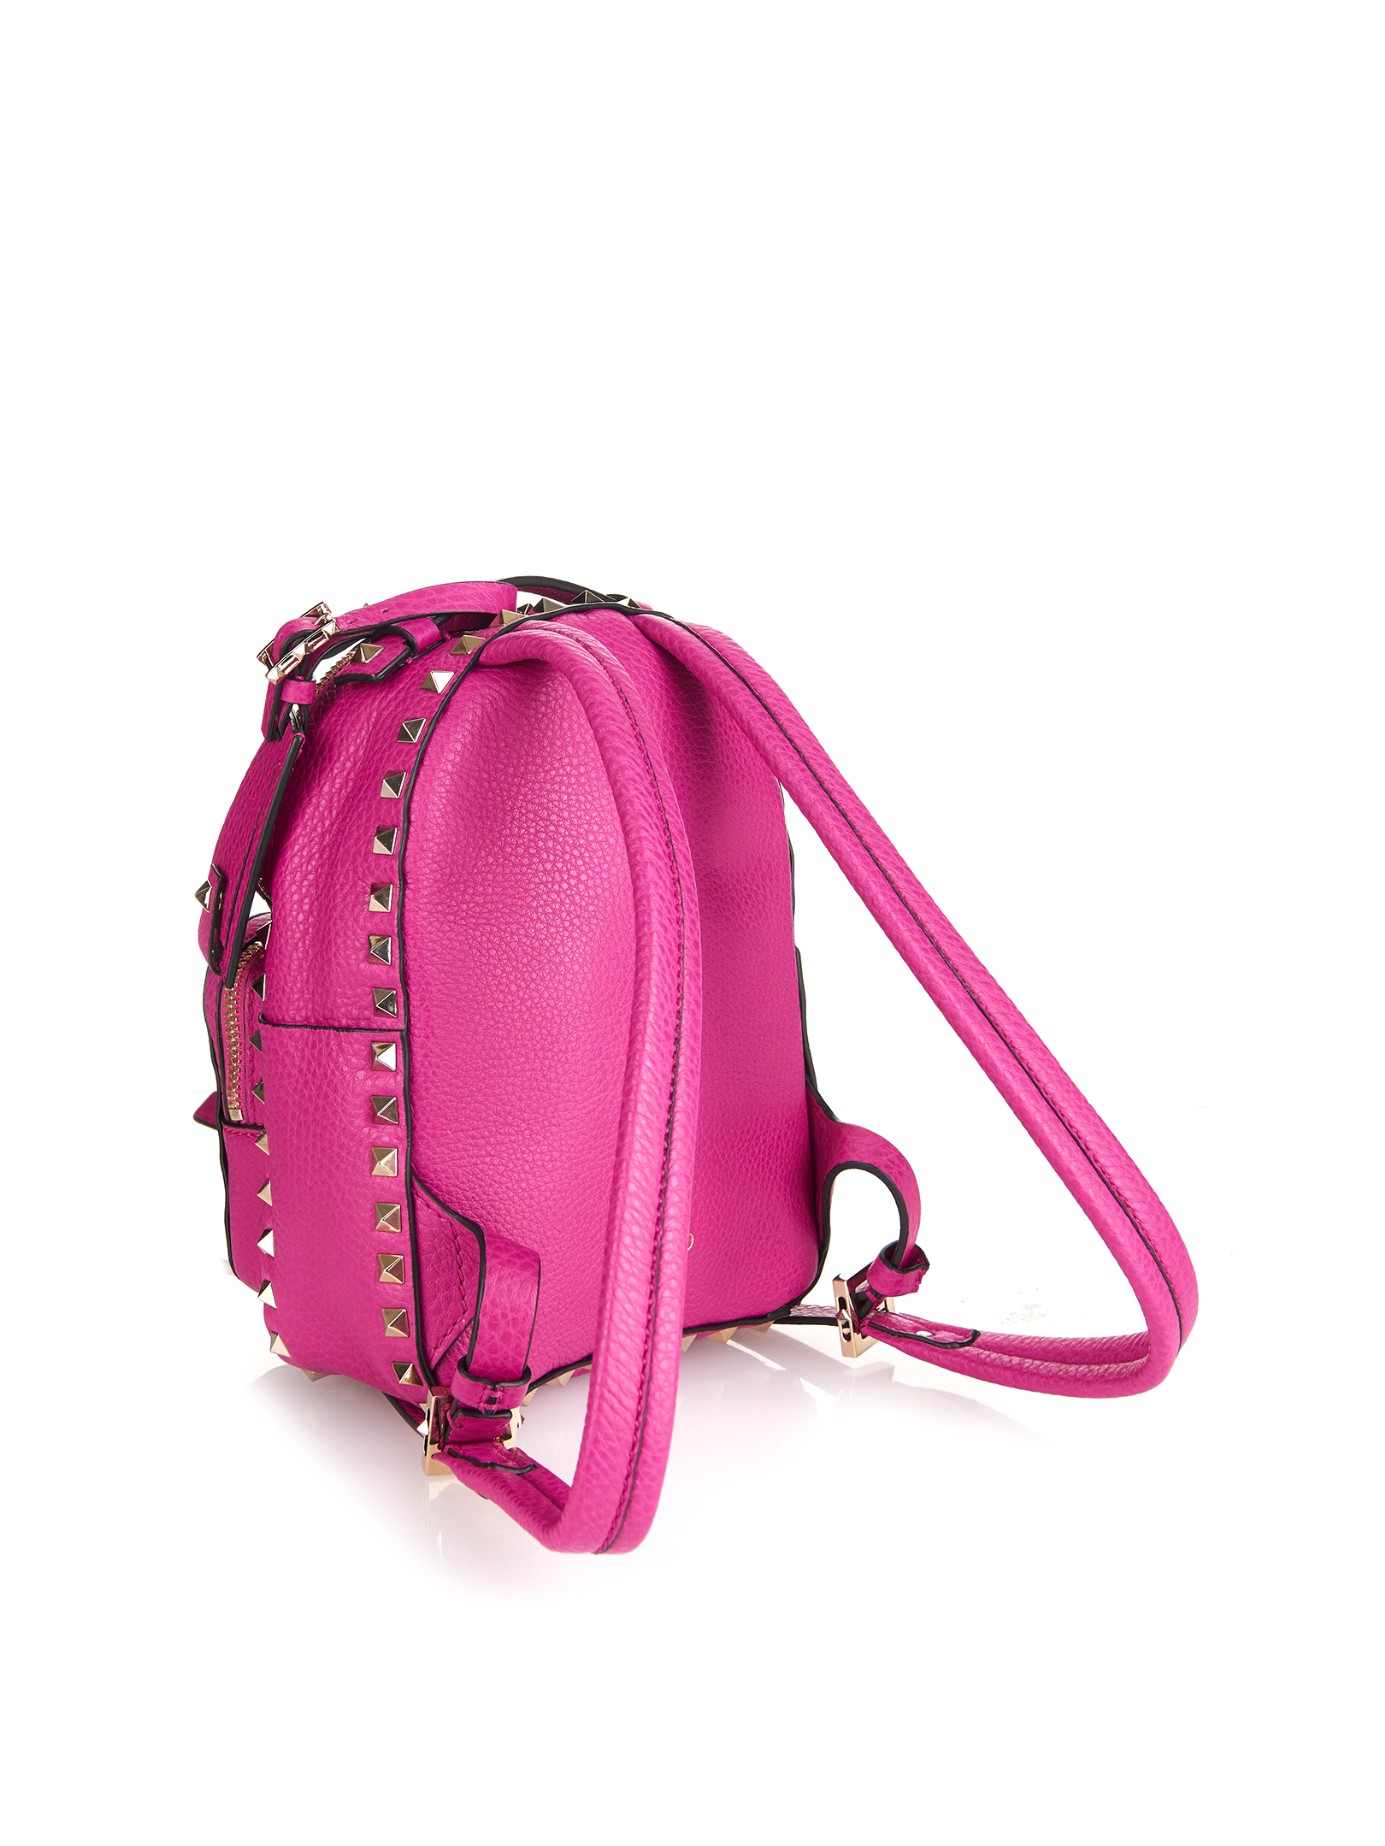 Valentino Rockstud Leather Mini Backpack in Pink | Lyst